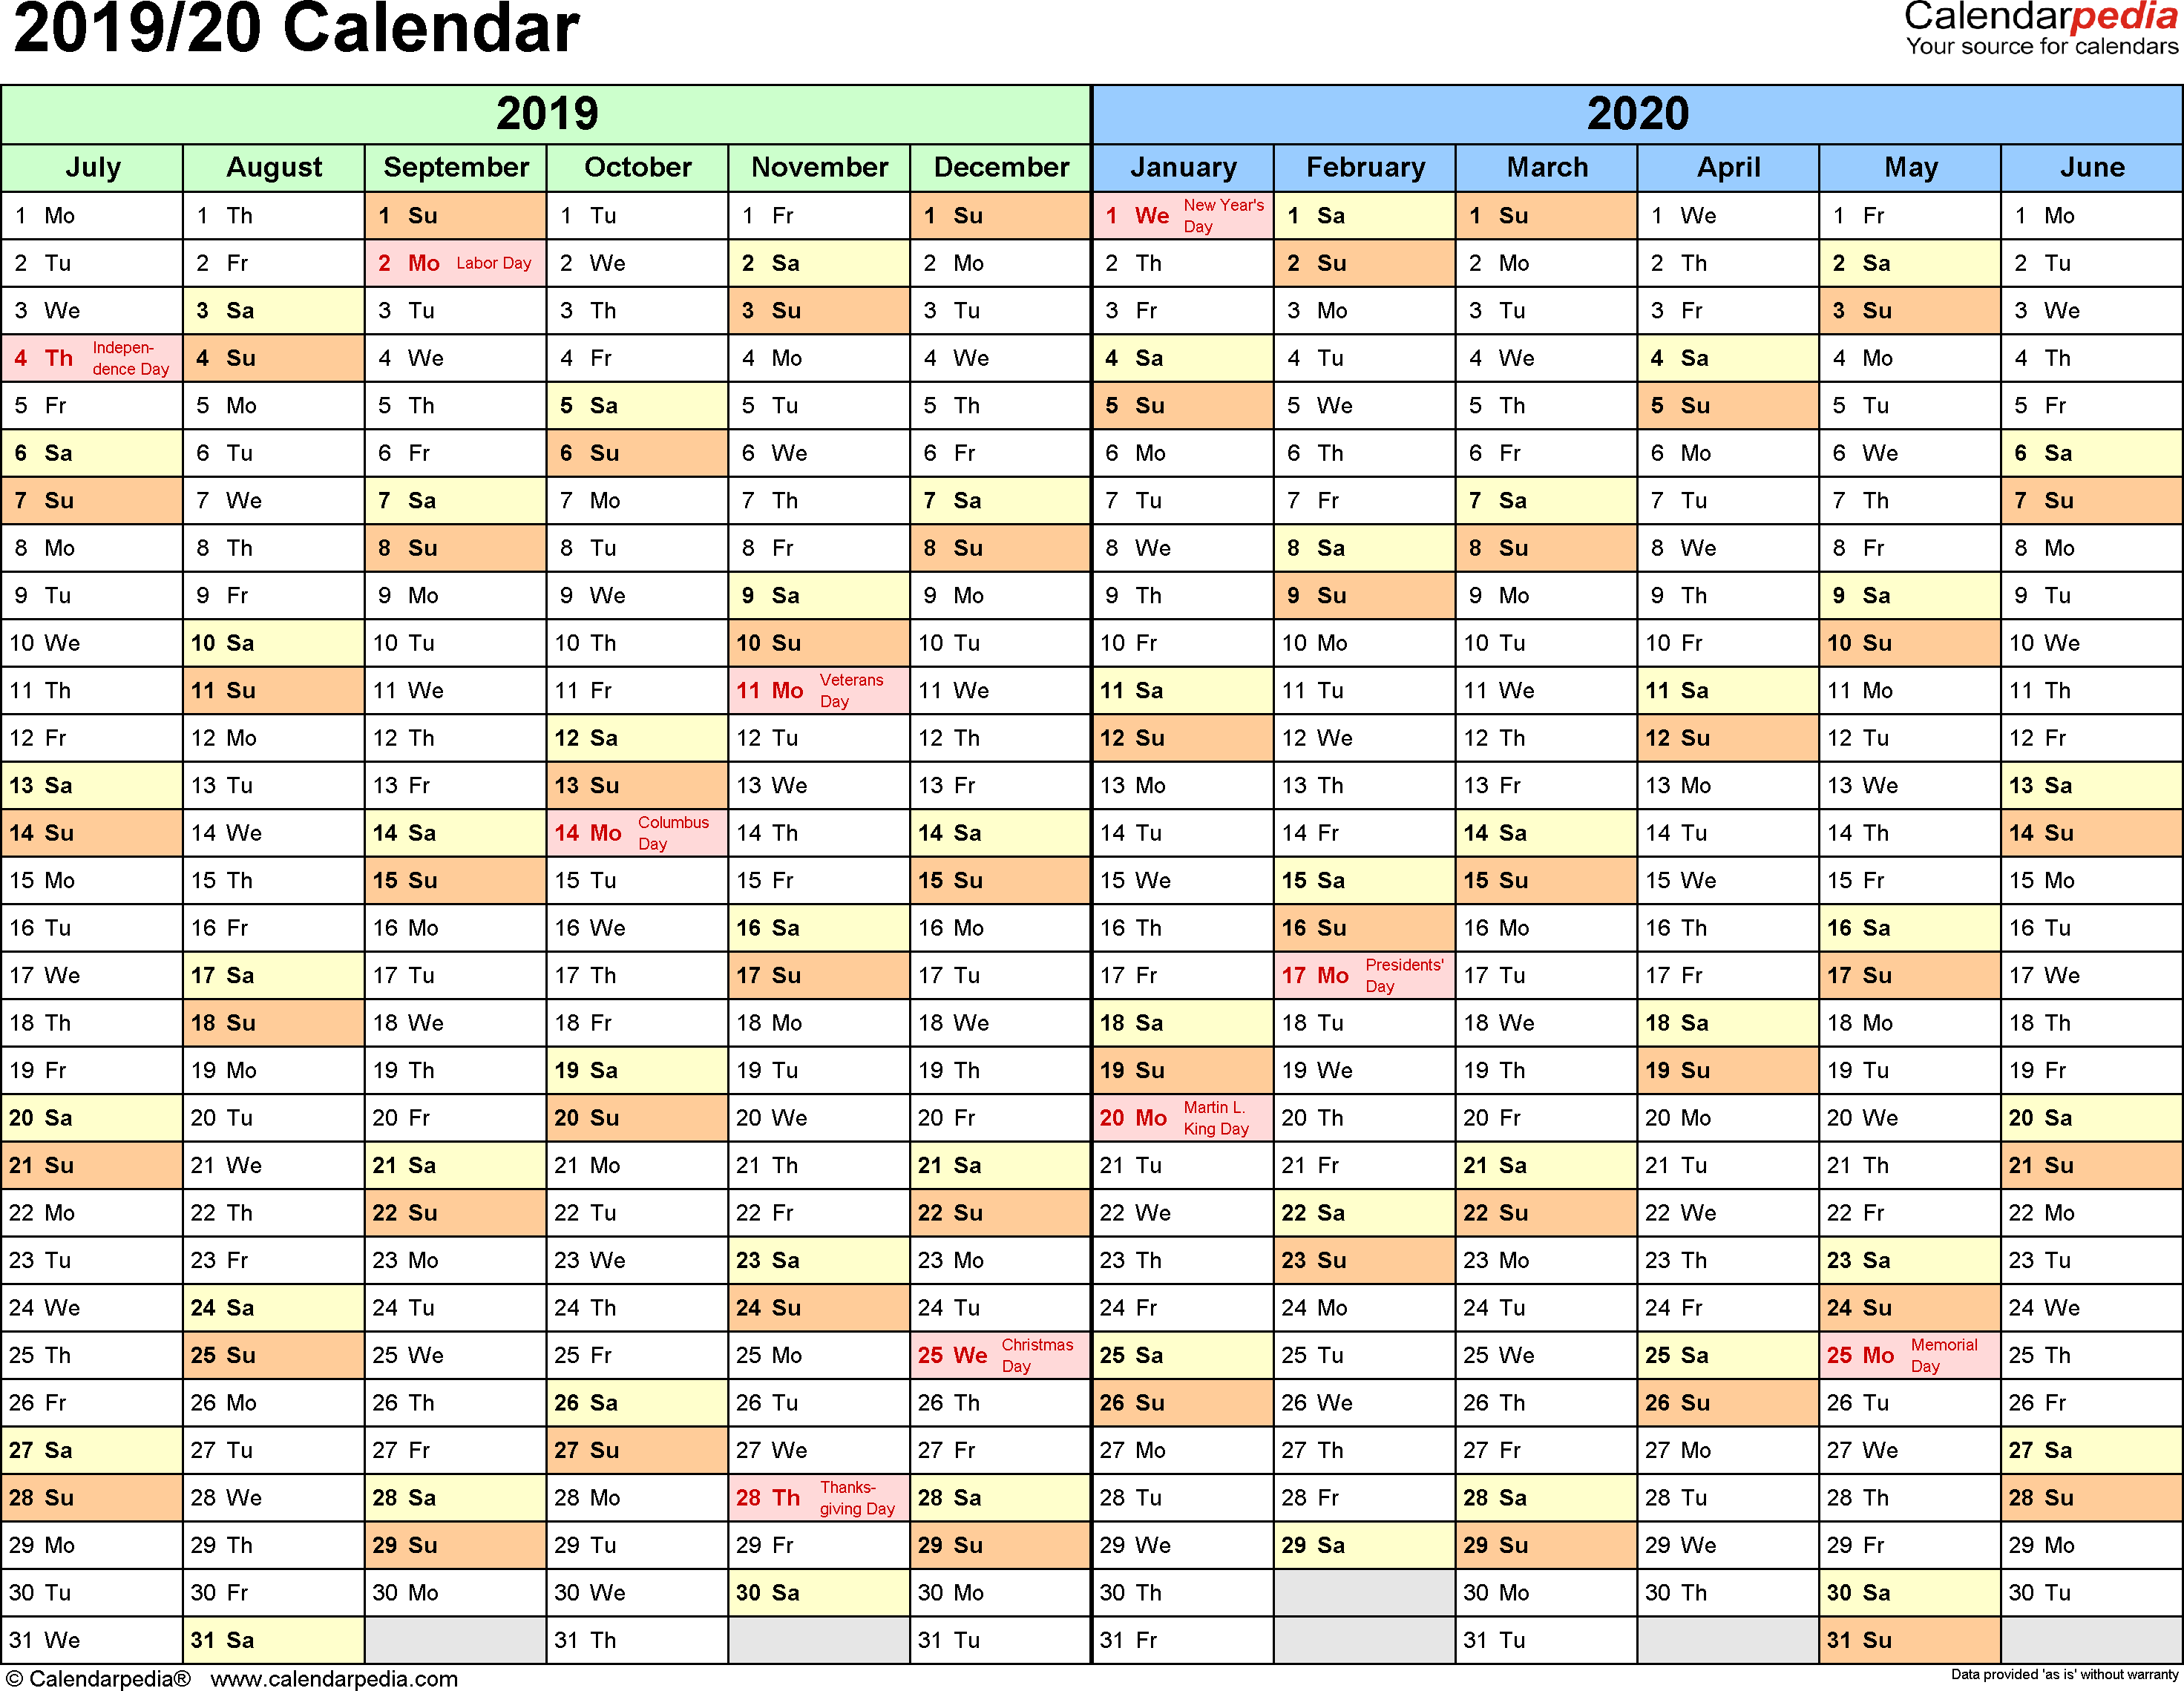 Fiscal Year 2019 Calendar Pdf With Split 20 July To June PDF Templates